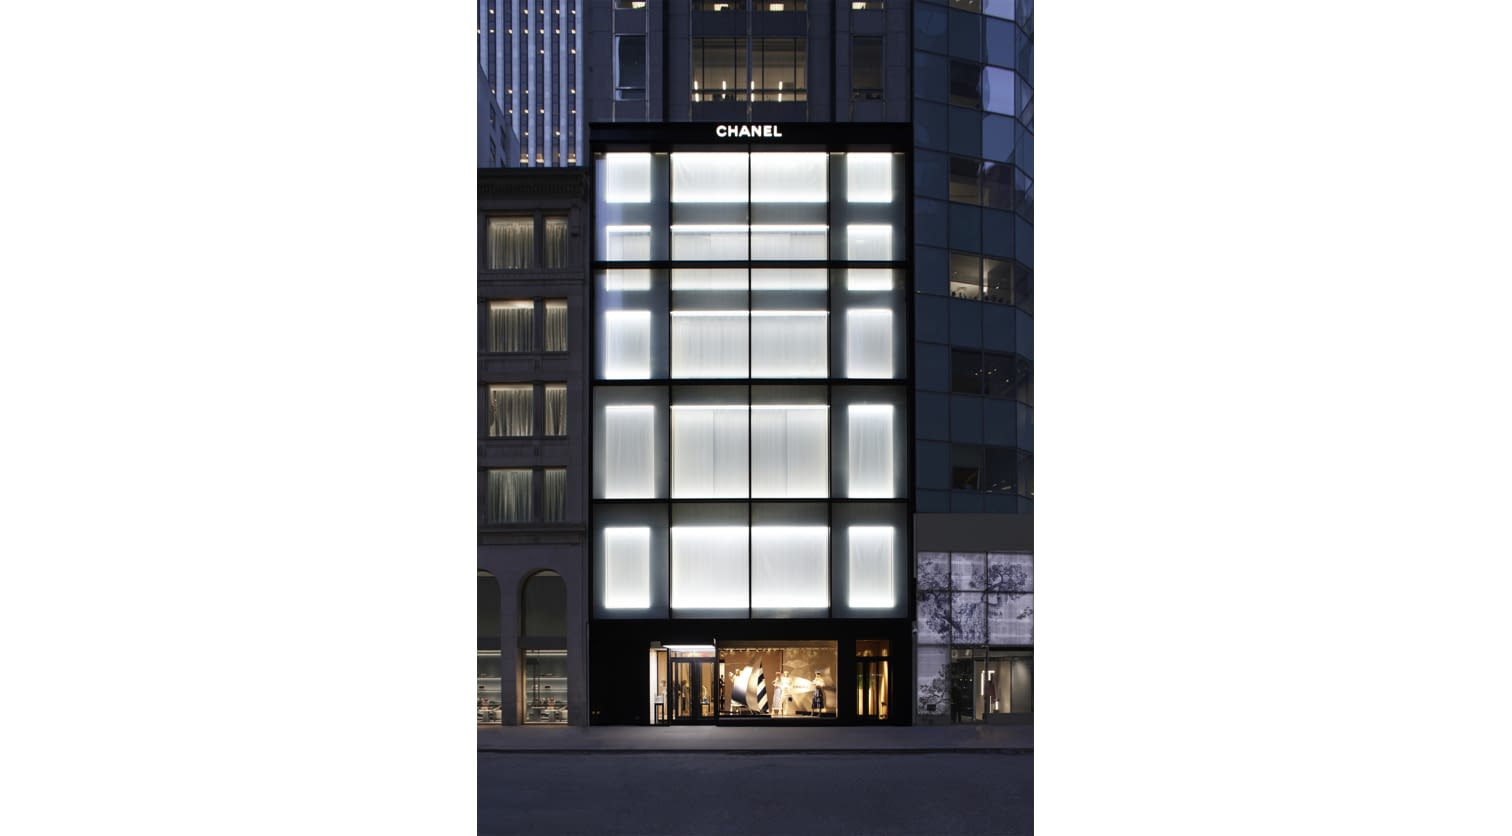 01_The_NYC_57th_street_flagship_reopening_pictures_by_Sam_Frost_LD.jpg